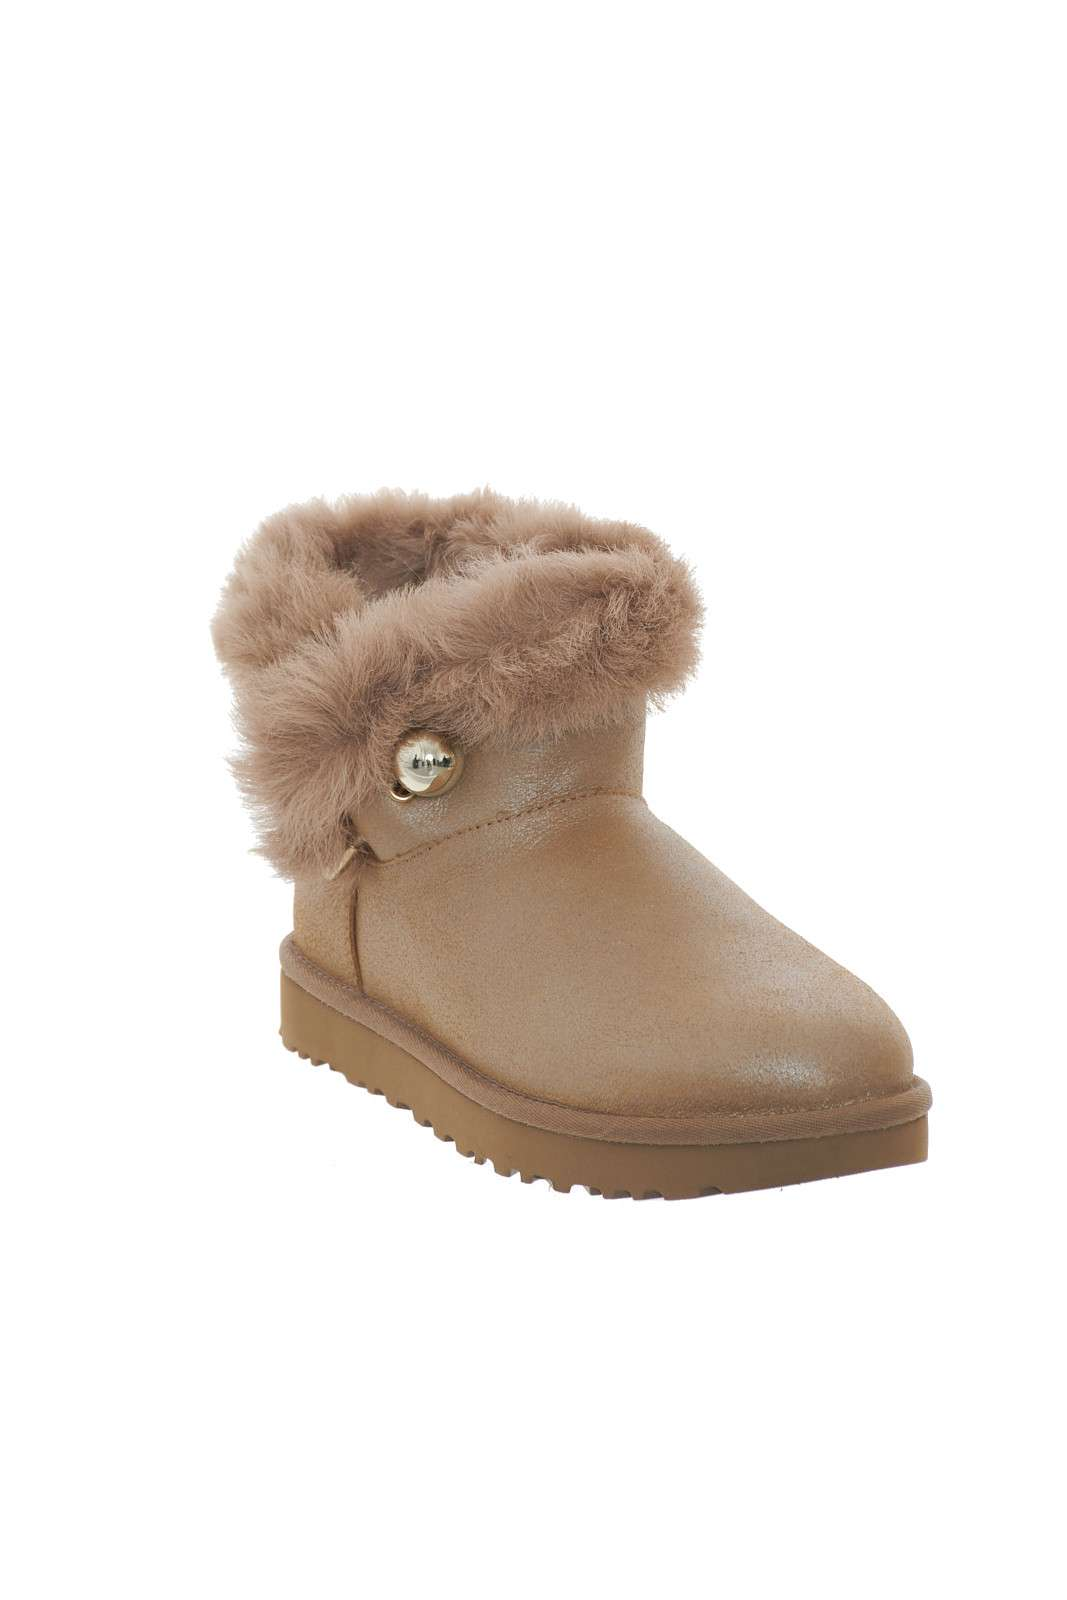 https://www.parmax.com/media/catalog/product/a/i/AI-outlet_parmax-scarponcini-donna-Ugg-1103761-D.jpg